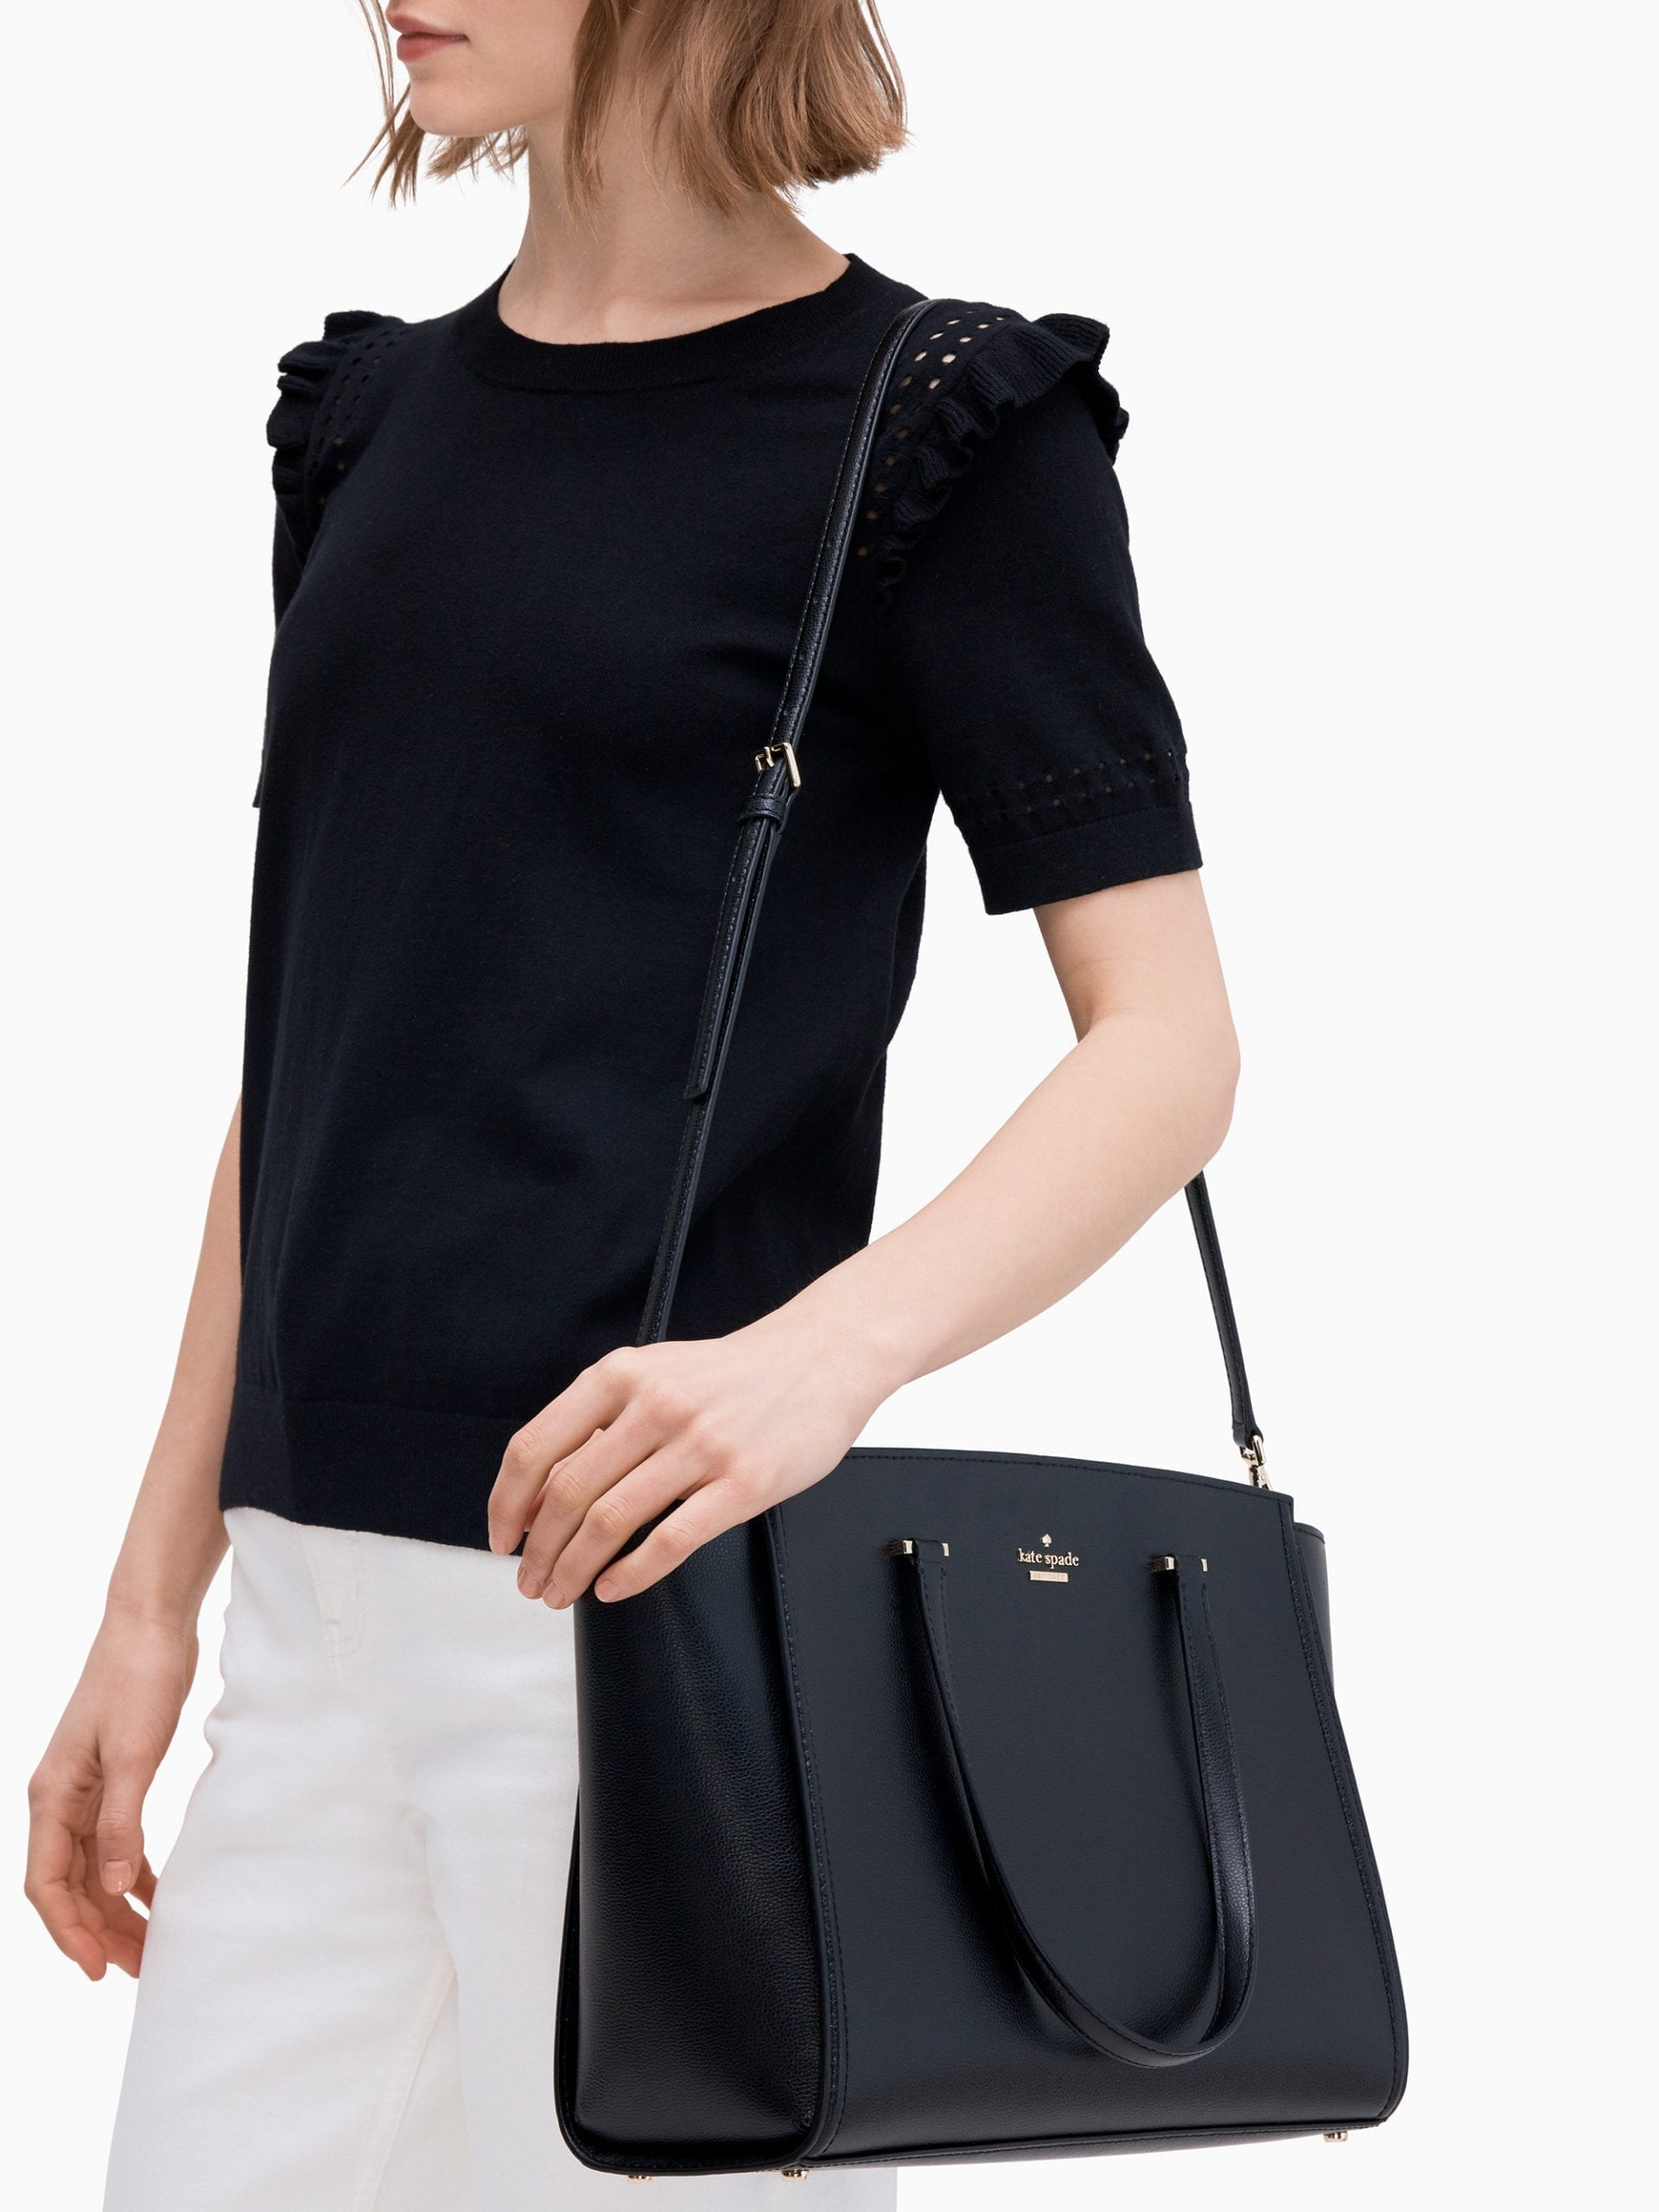 Kate Spade: Surprise Sale Up To 75% Off & Daily Deals